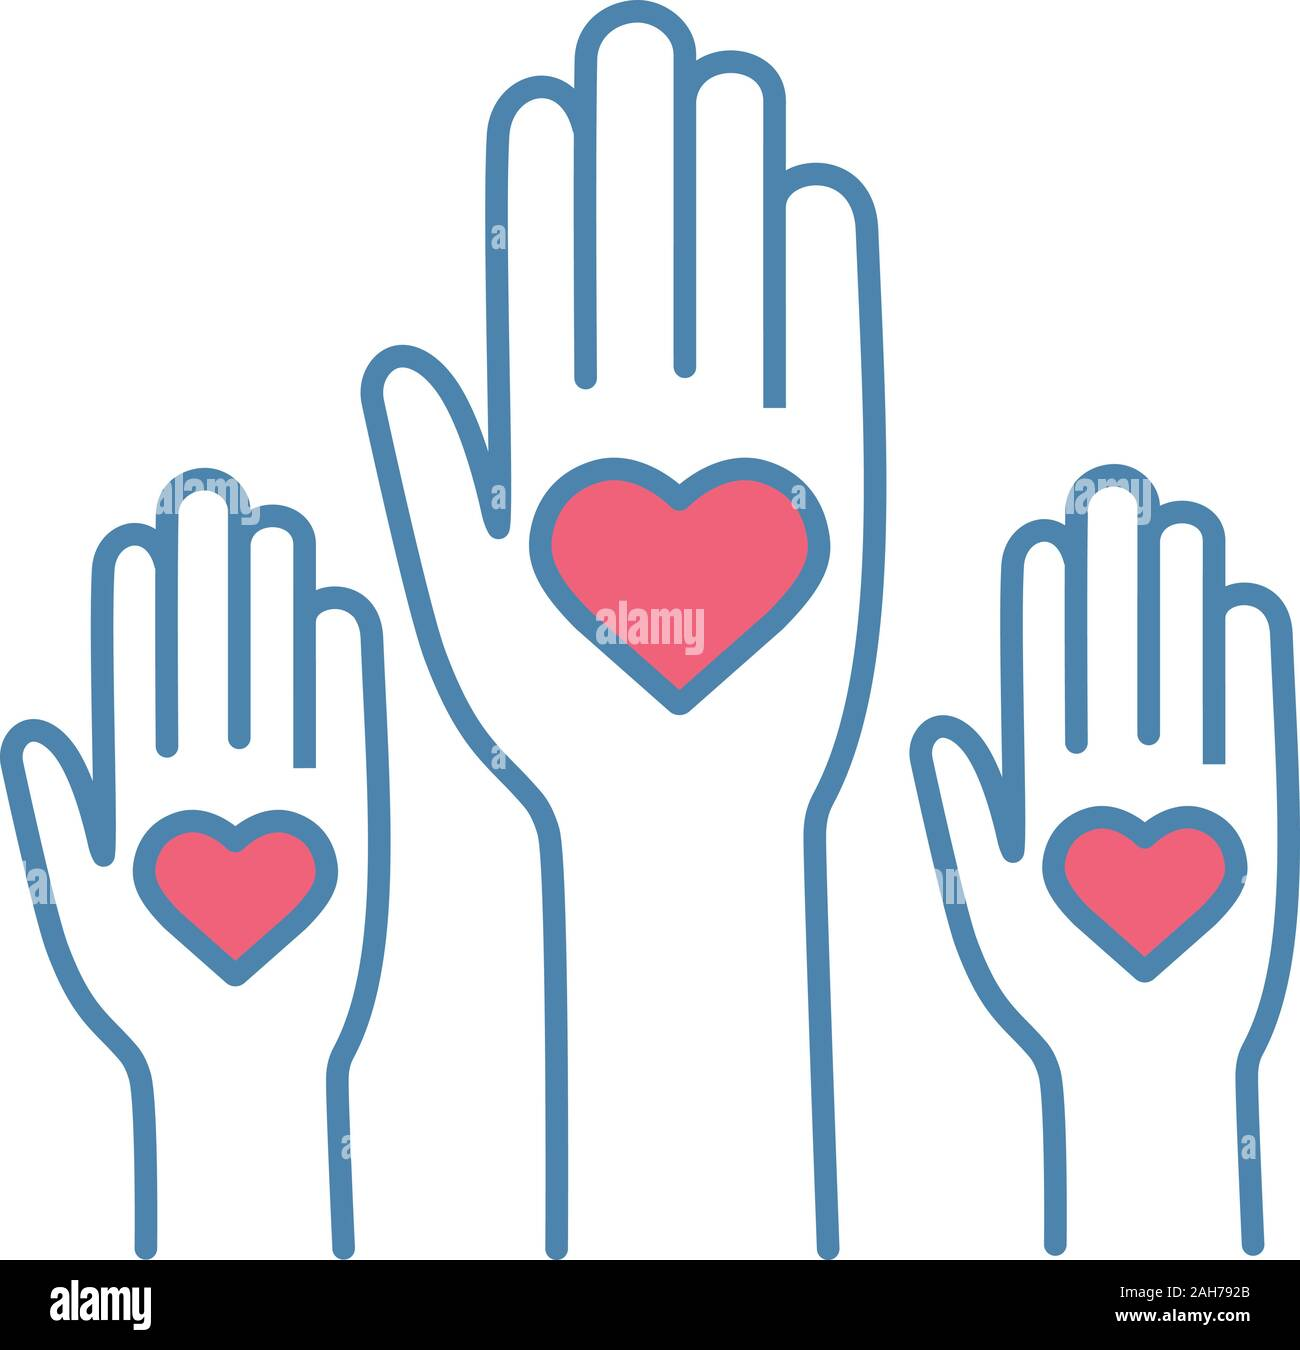 Volunteering Experience Color Icon Volunteers Helping Hands Voting Charity Unity In Diversity Isolated Vector Illustration Stock Vector Image Art Alamy